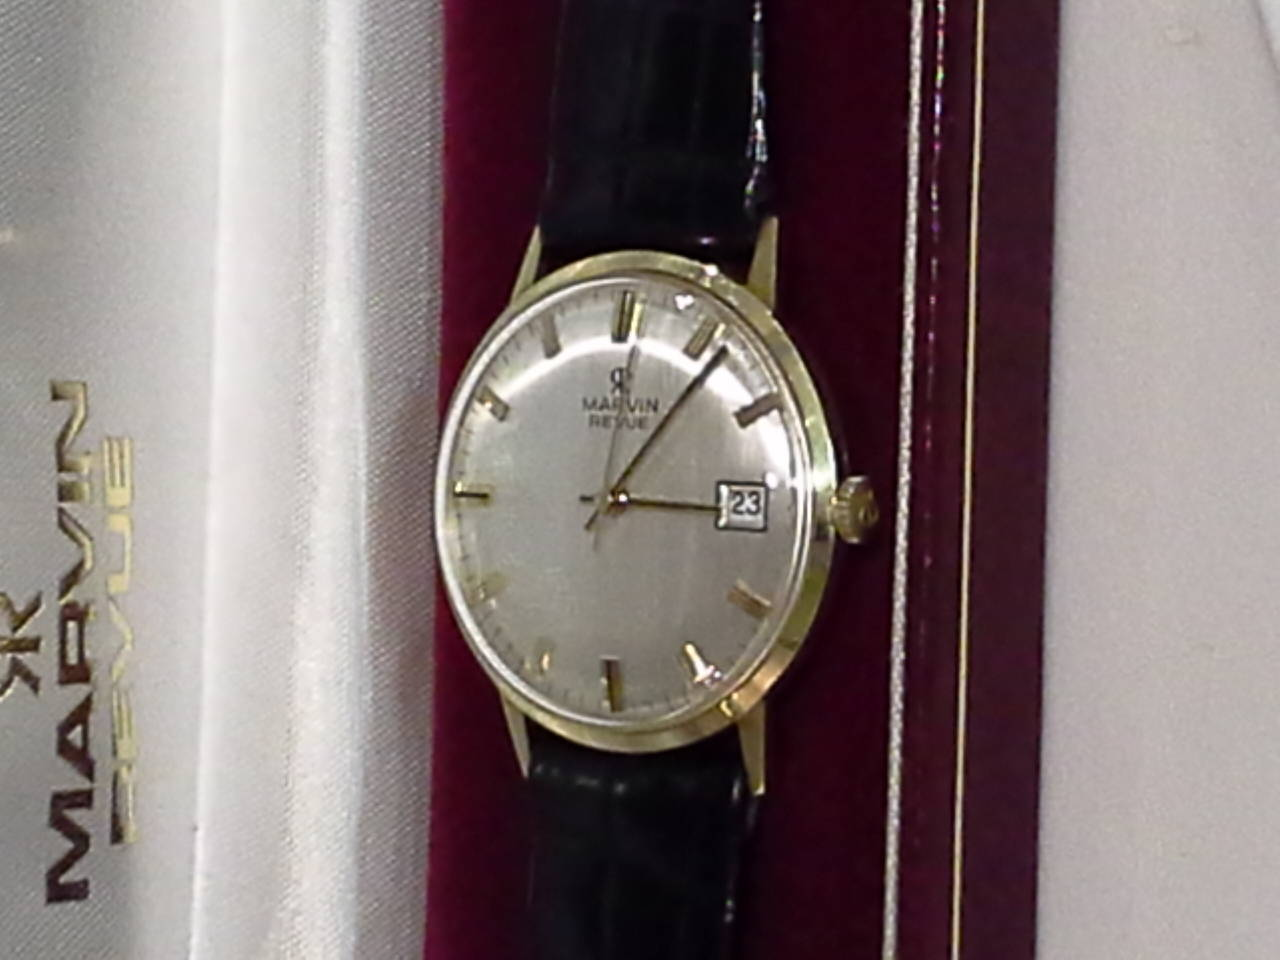 Marvin Revue Day/Date Gold Wristwatch With Original Bracelet/Buckle & In Original Box, The watch is stamped 0.375 10K on the back case, Manual wind, Original crown with double RR logo and baton markers. The watch is in fine working order. The